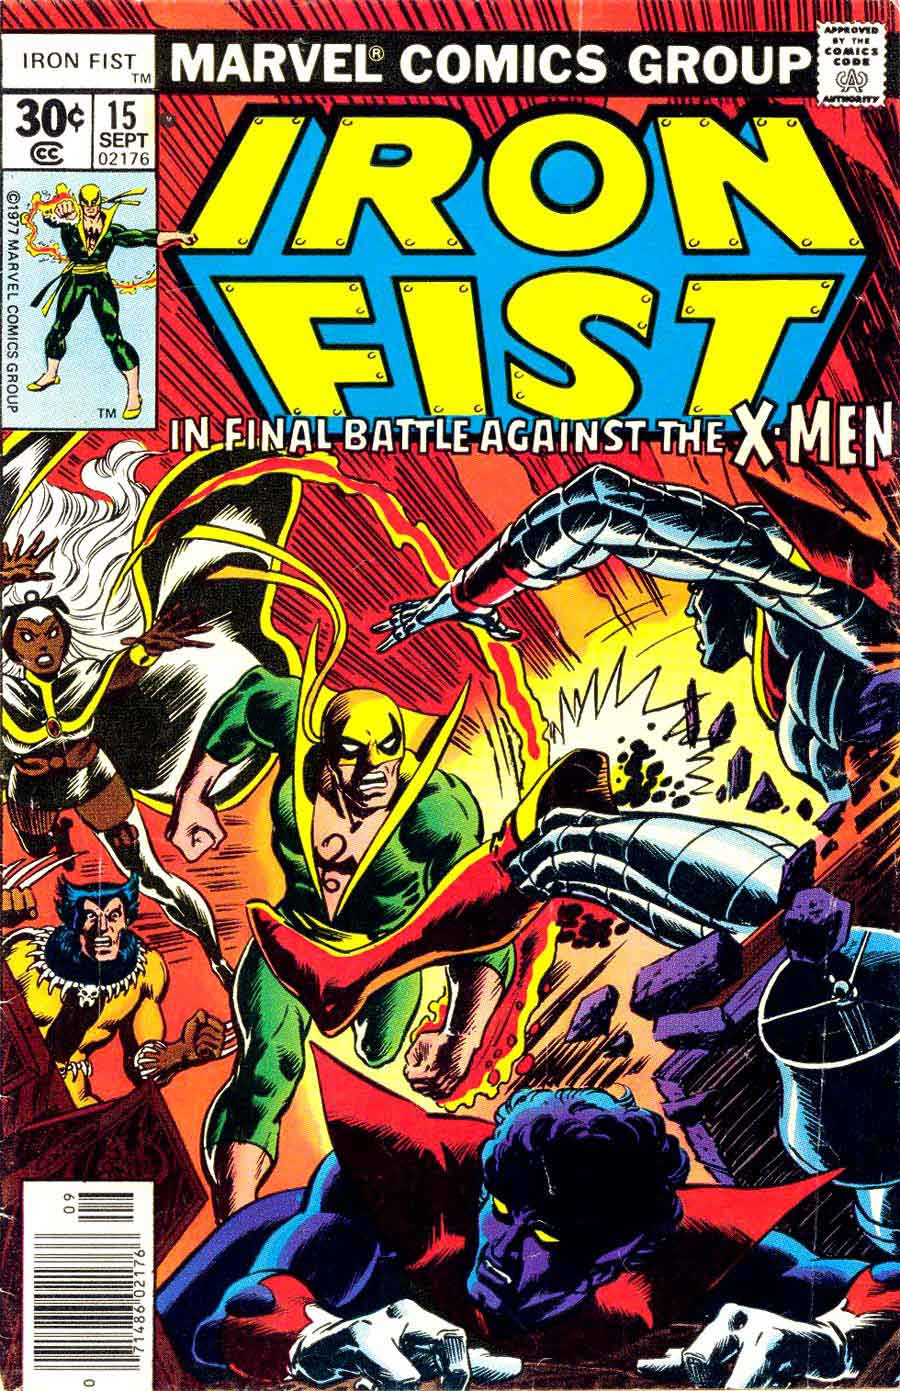 Iron Fist v1 #15 x-men bronze age marvel comic book cover art by Dave Cockrum